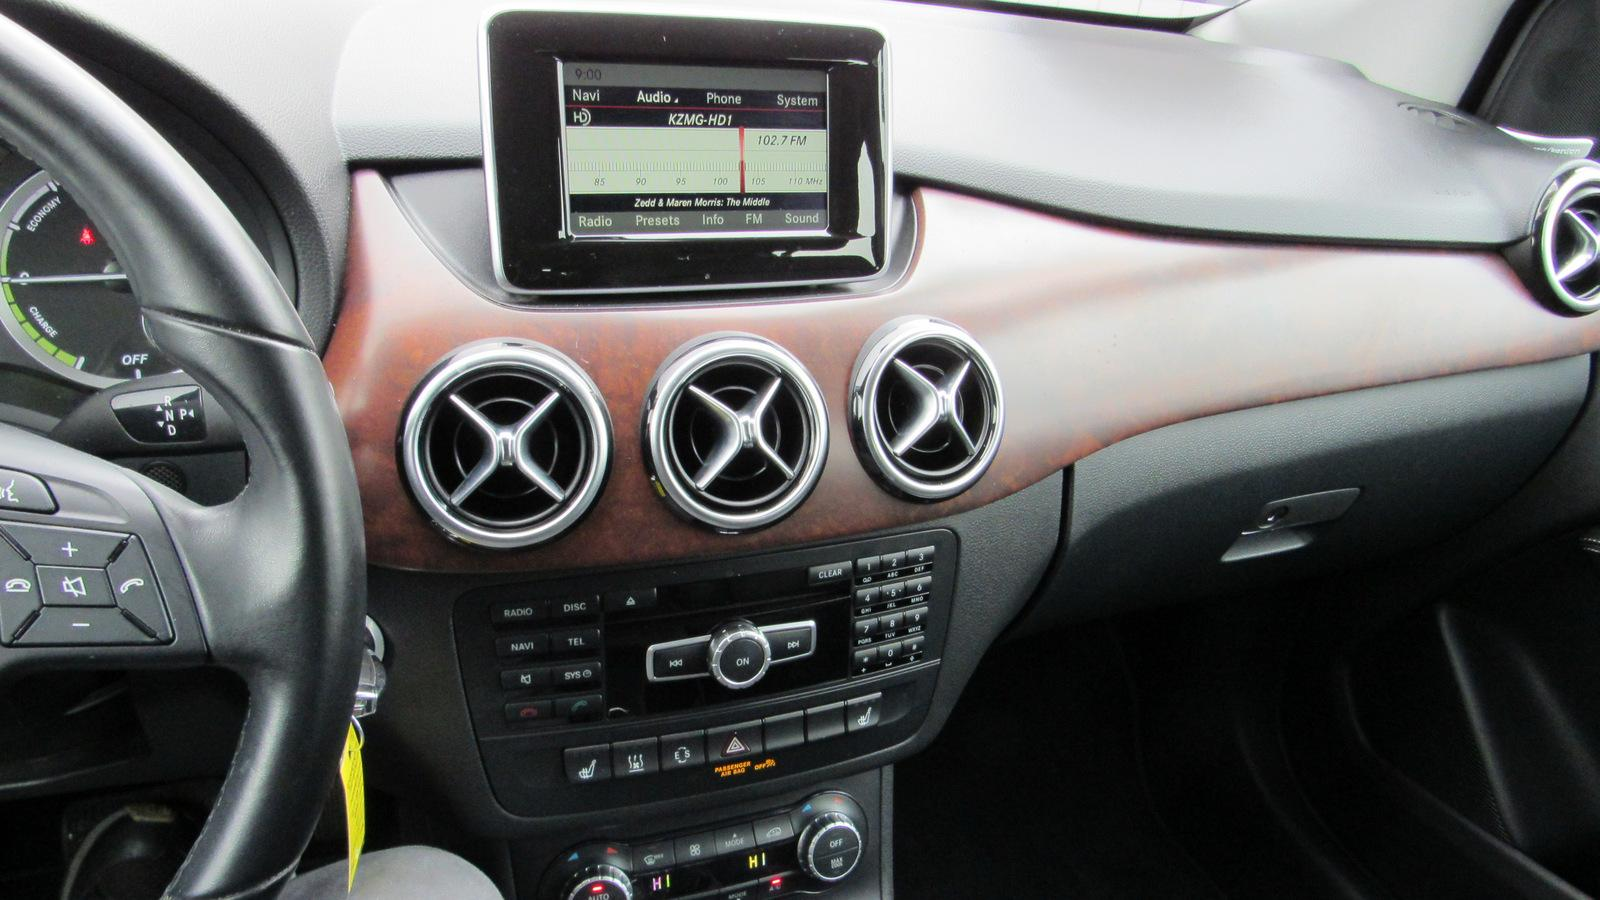 Pre-Owned 2014 Mercedes-Benz B-Class 4dr HB Electric Drive